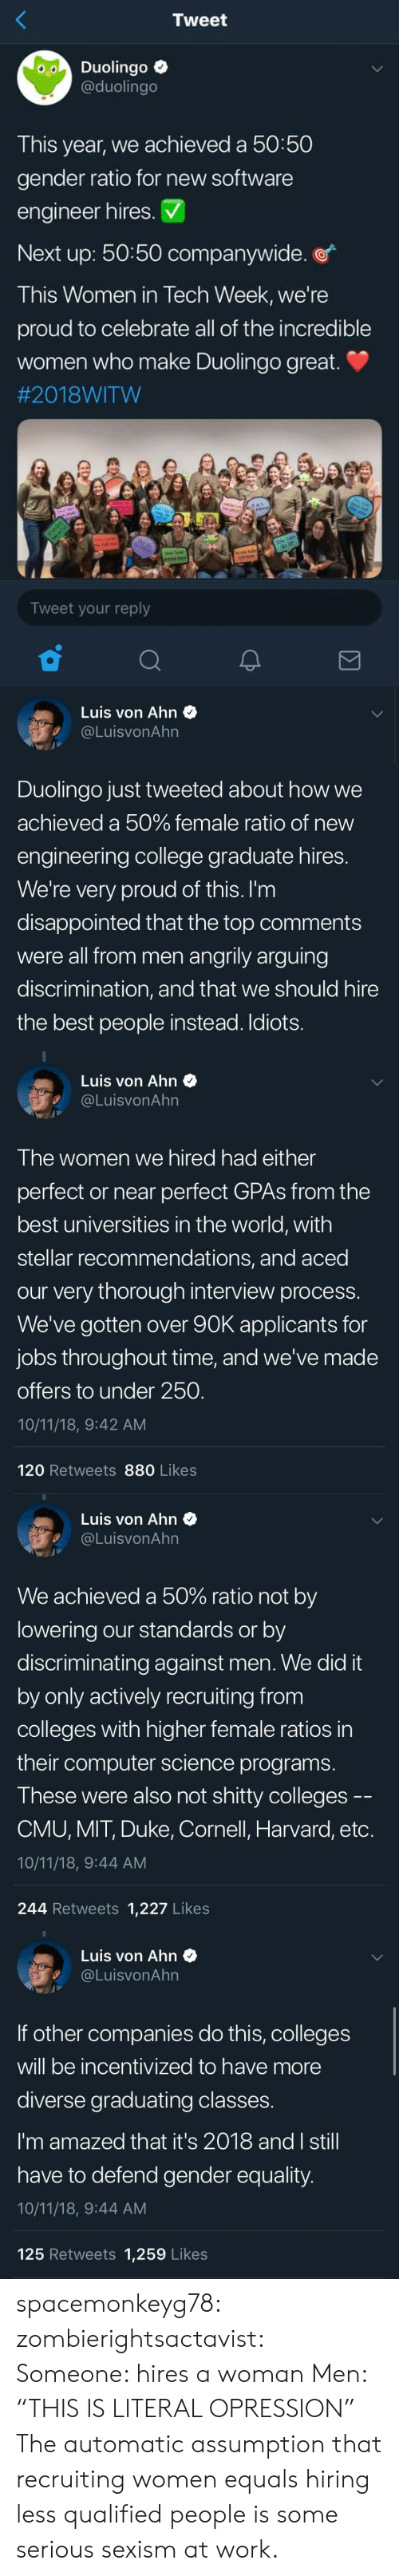 """Duke: Tweet  Duolingo e  @duolingo  This year, we achieved a 50:50  gender ratio for new software  engineer hires. V  Next up: 50:50 companywide.  This Women in Tech Week, we're  proud to celebrate all of the incredible  women who make Duolingo great  #2018:WITW  Tweet your reply   Luis von Ahn  @LuisvonAhn  Duolingo just tweeted about how we  achieved a 50% female ratio of new  engineering college graduate hires.  We're very proud of this. I'm  disappointed that the top comments  were all from men angrily arguing  discrimination, and that we should hire  the best people instead. Idiots.   Luis von Ahn  @LuisvonAhn  T he women we hired had either  perfect or near perfect GPAs from the  best universities in the world, with  stellar recommendations, and aced  our very thorough interview process.  We've gotten over 90K applicants for  jobs throughout time, and we've made  offers to under 250.  10/11/18, 9:42 AM  120 Retweets 880 Likes   Luis von Ahn  @LuisvonAhr  We achieved a 50% ratio not by  lowering our standards or by  discriminating against men. We did it  by only actively recruiting fronm  colleges with higher female ratios in  their computer science programs.  These were also not shitty colleges --  CMU, MIT, Duke, Cornell, Harvard, etc.  10/11/18, 9:44 AM  244 Retweets 1,227 Likes   Luis von Ahn  @LuisvonAhn  If other companies do this, colleges  will be incentivized to have more  diverse graduating classes.  I'm amazed that it's 2018 and I still  have to defend gender equality.  10/11/18, 9:44 AM  125 Retweets 1,259 Likes spacemonkeyg78: zombierightsactavist:   Someone: hires a woman  Men: """"THIS IS LITERAL OPRESSION""""    The automatic assumption that recruiting women equals hiring less qualified people is some serious sexism at work."""